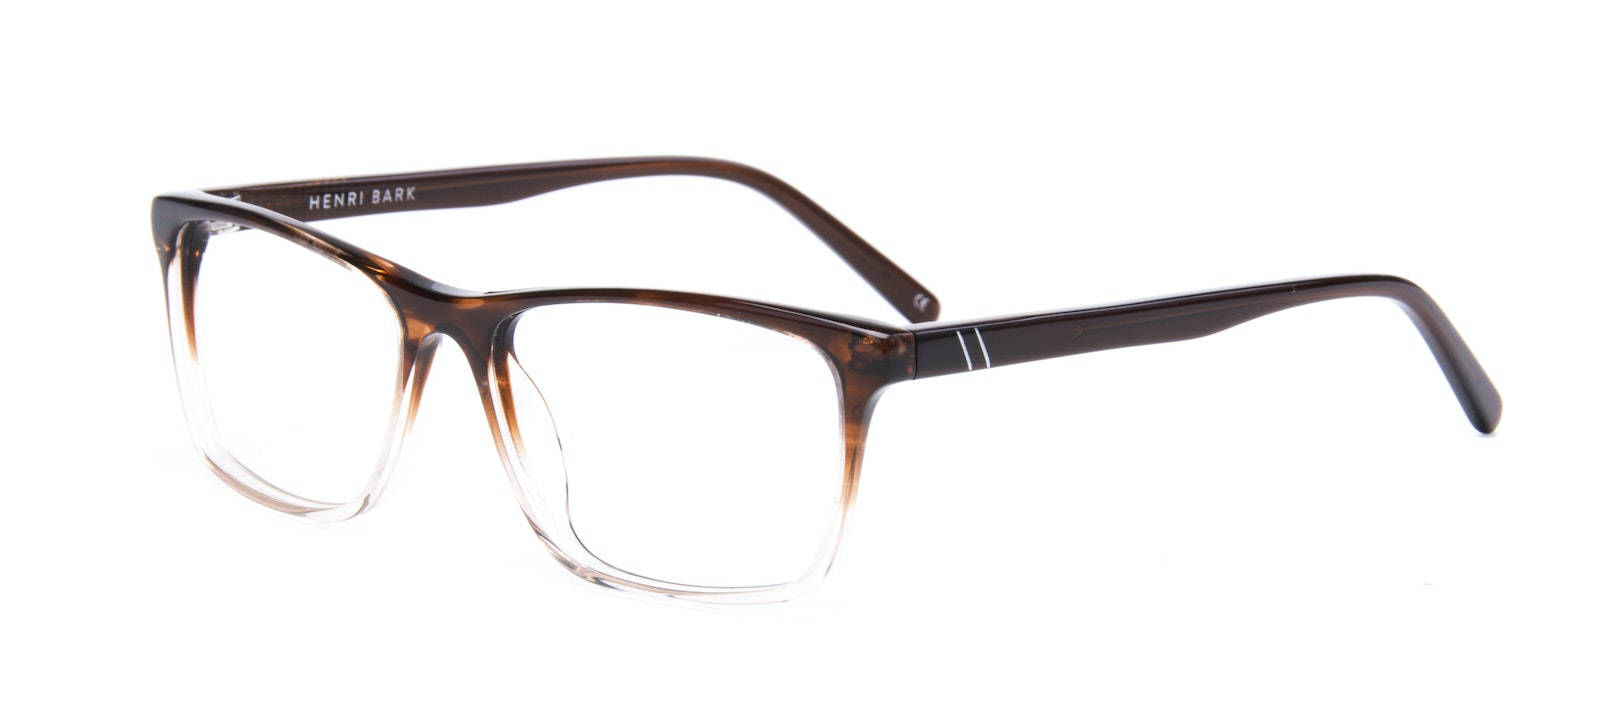 Affordable Fashion Glasses Rectangle Eyeglasses Men Henri Bark Tilt